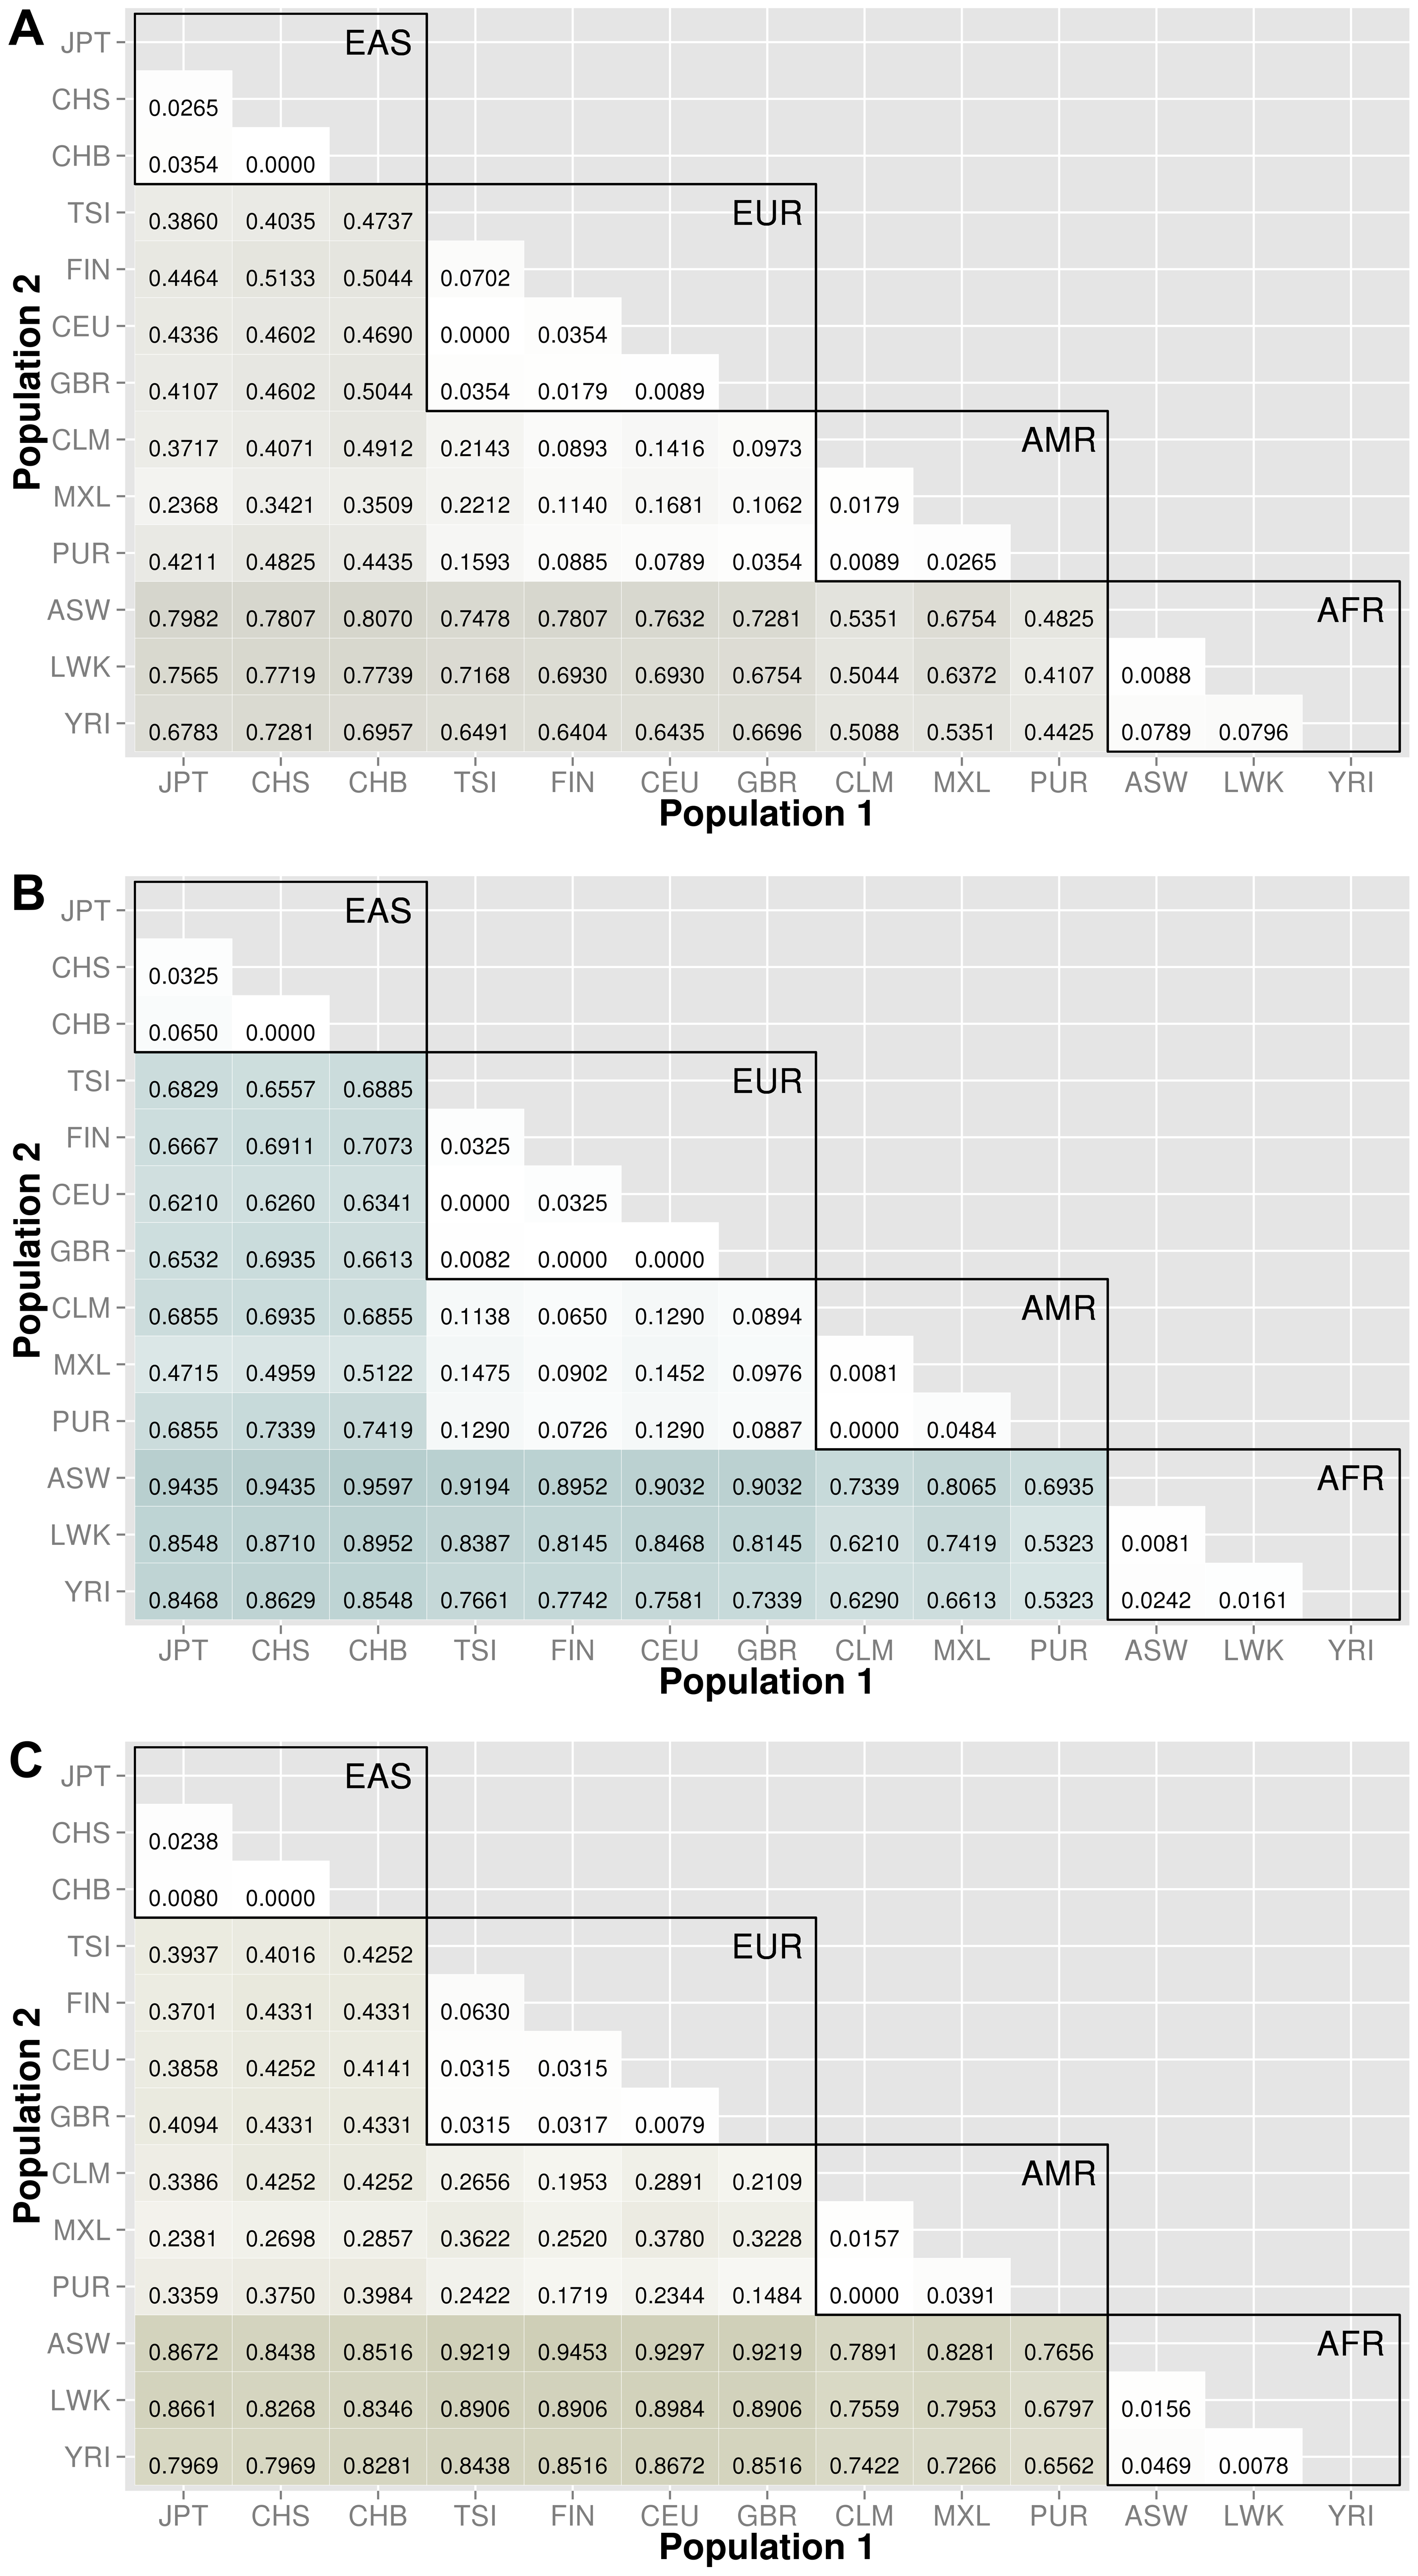 Proportion of significantly different bins in natural selection analysis by region of identification: A) AFR continental group, B) EAS continental group, and C) EUR continental group.